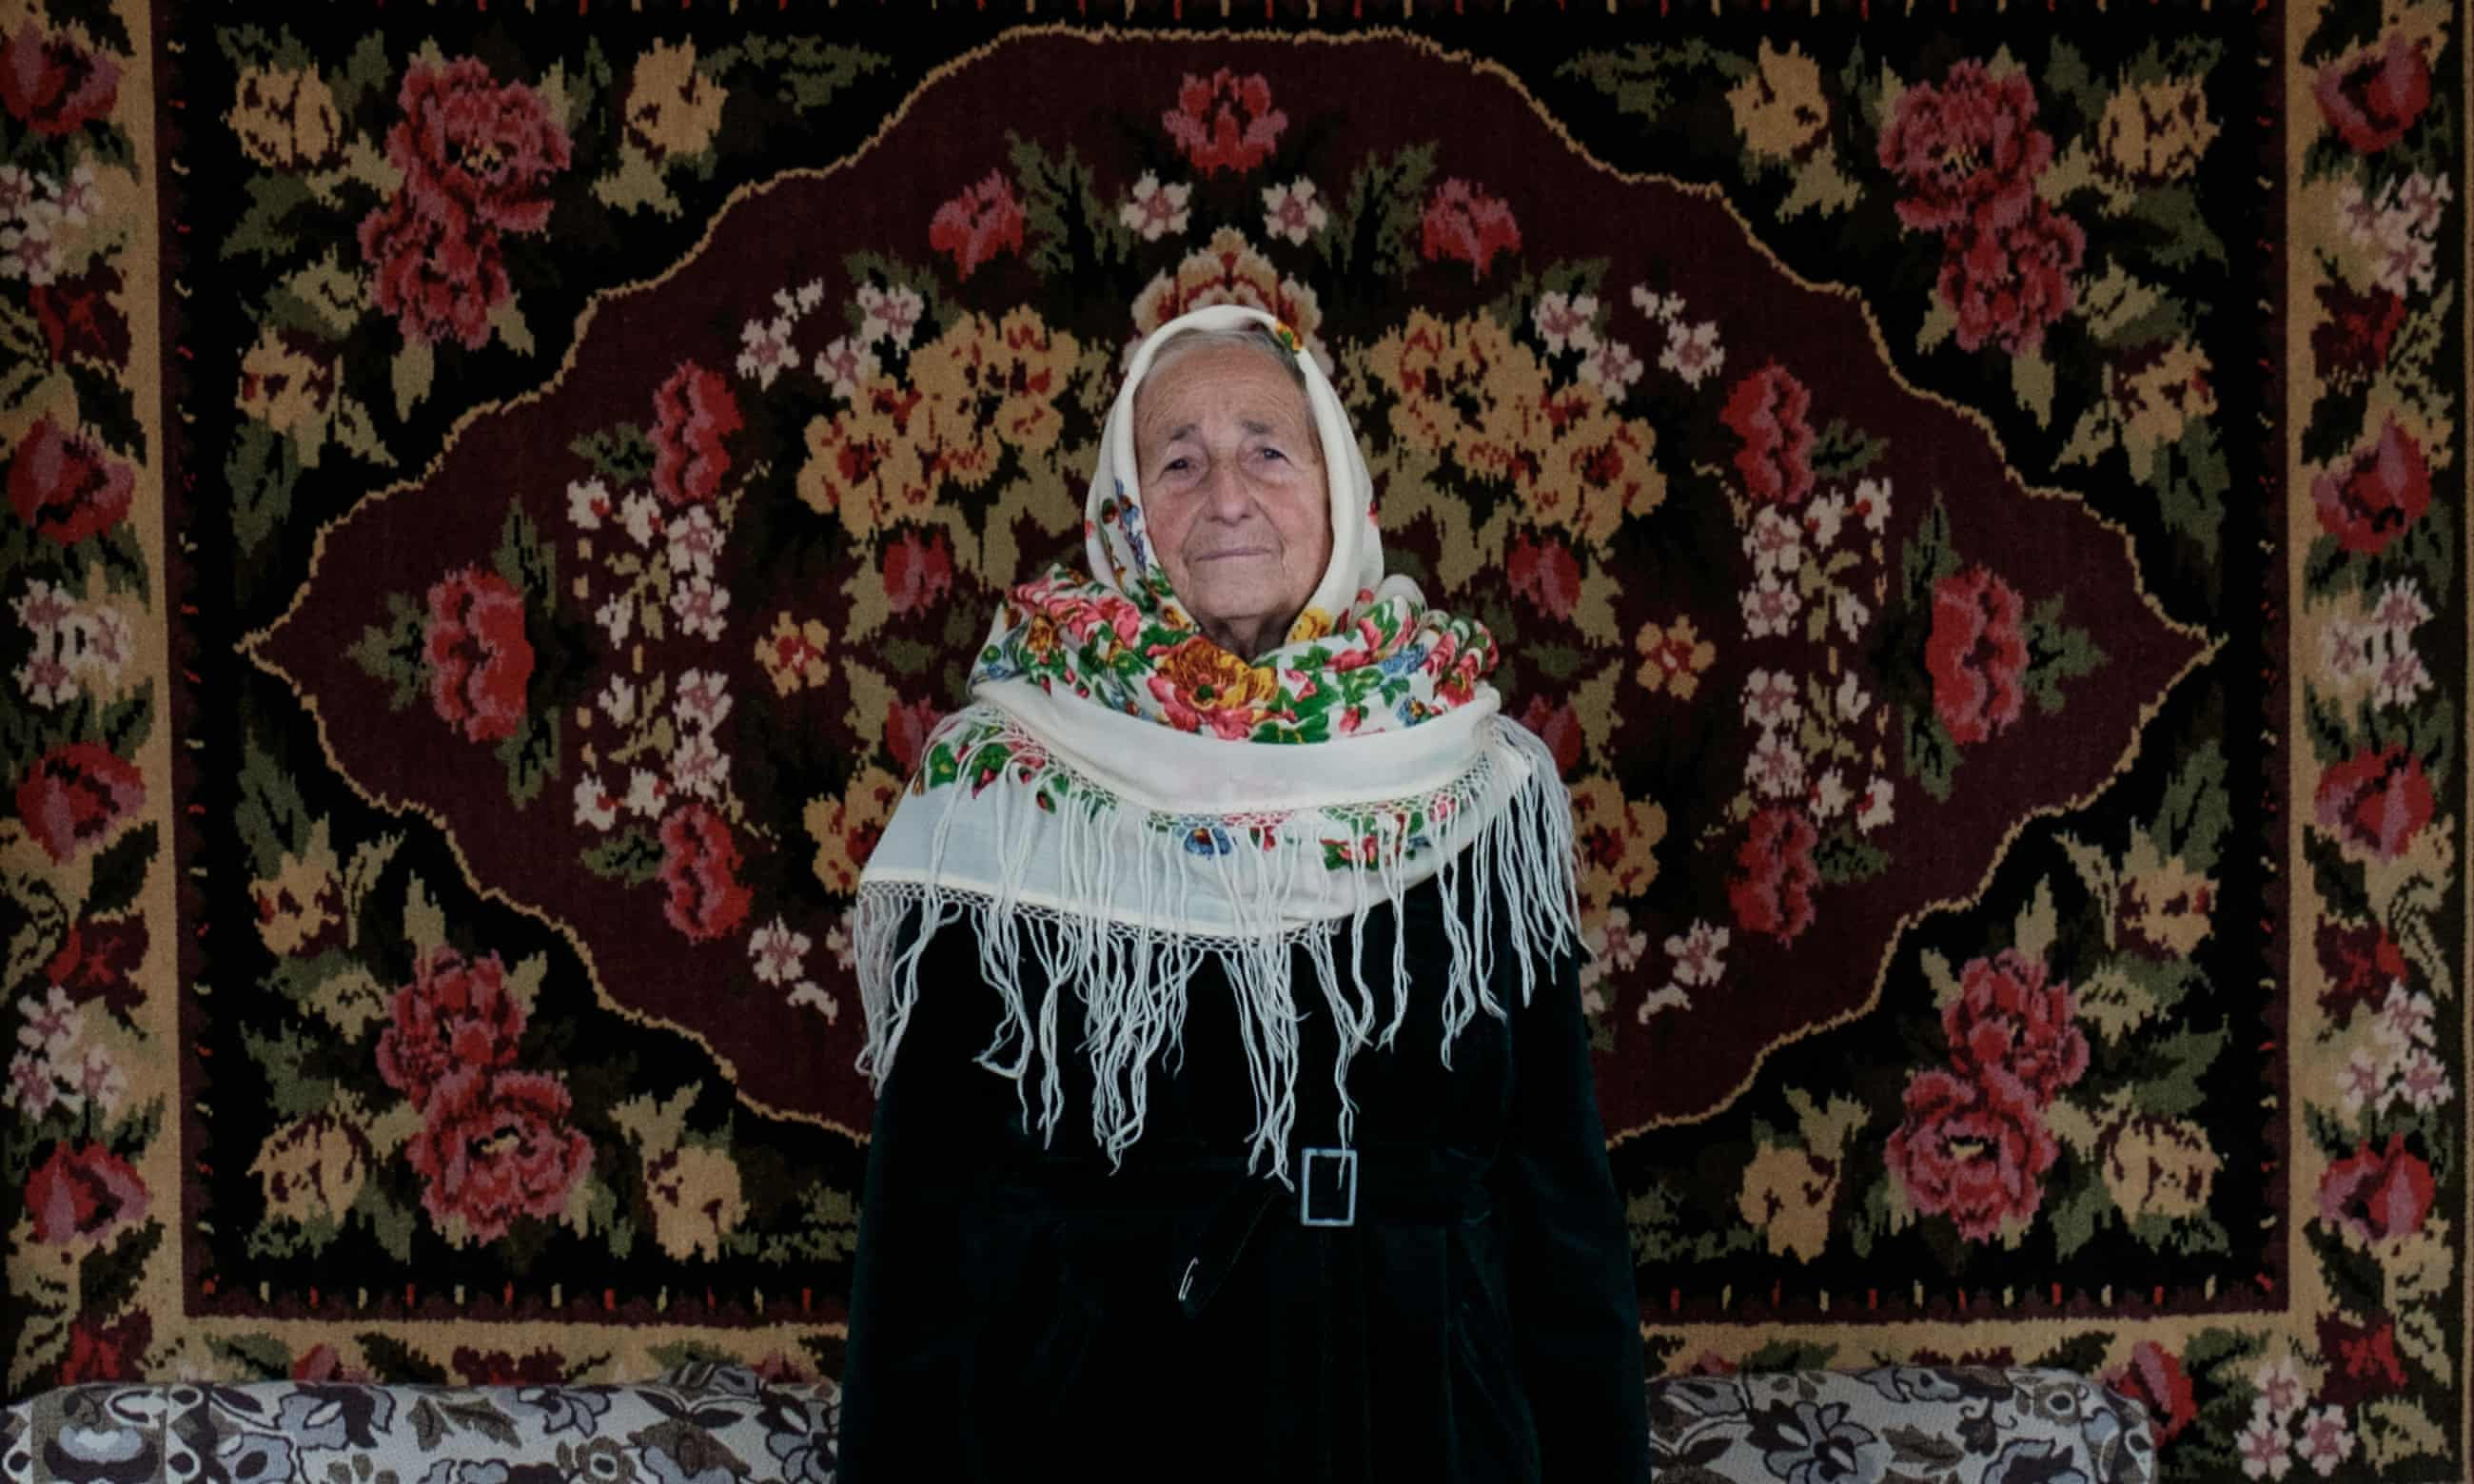 A Belarusian woman's life story in outfits – in pictures